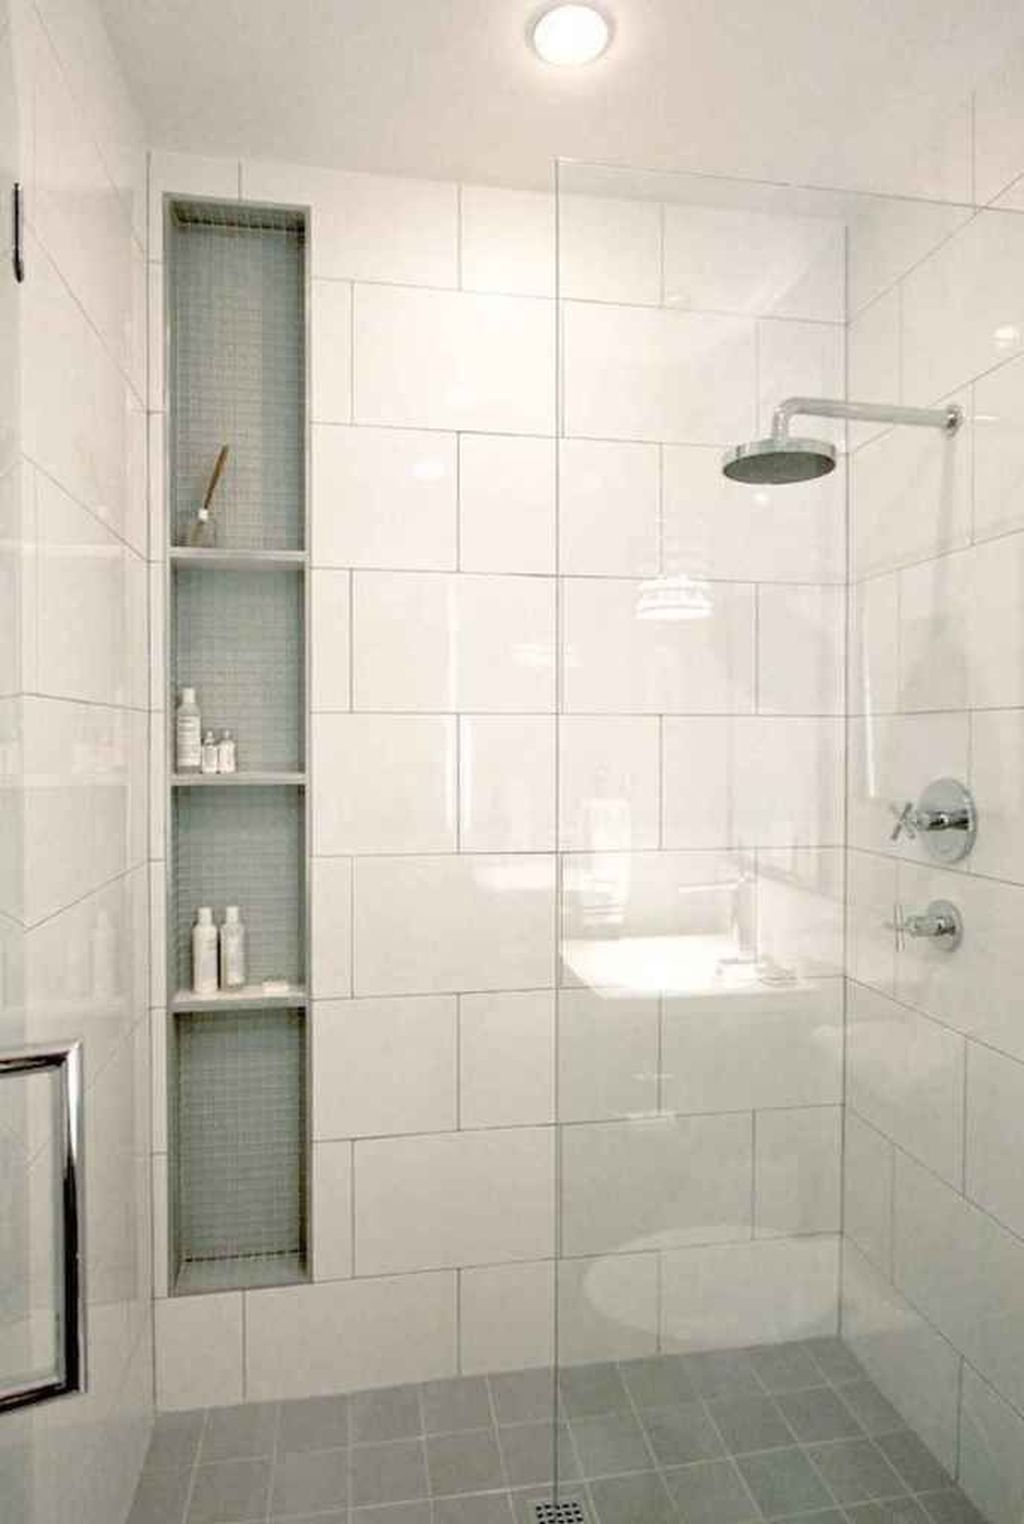 20 Hottest Small Bathroom Remodel Ideas For Space Saving Coodecor Bathroom Remodel Shower Small Bathroom Remodel Designs Bathrooms Remodel